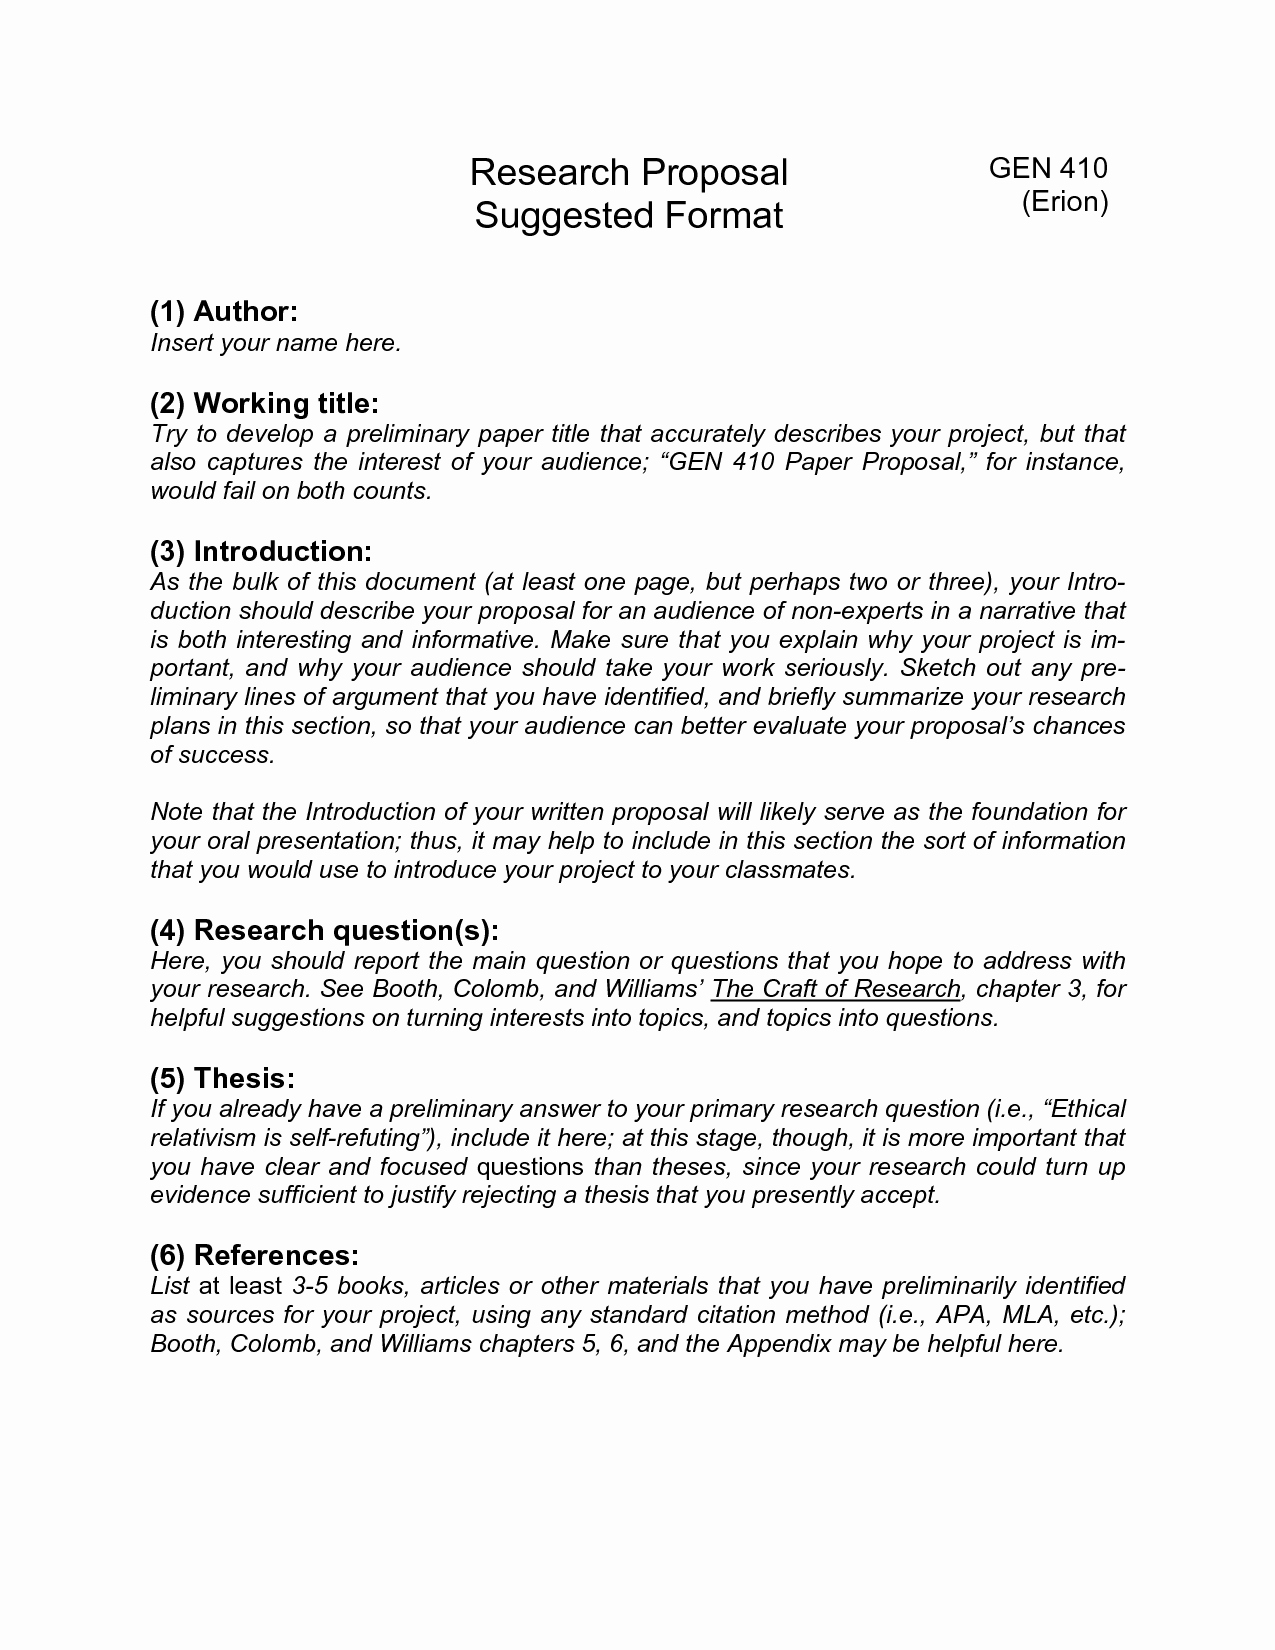 Importance Of Good Health Essay  Essay Paper Help also English Literature Essay Topics  Format For Research Paper Proposal Essay Example Project  High School Vs College Essay